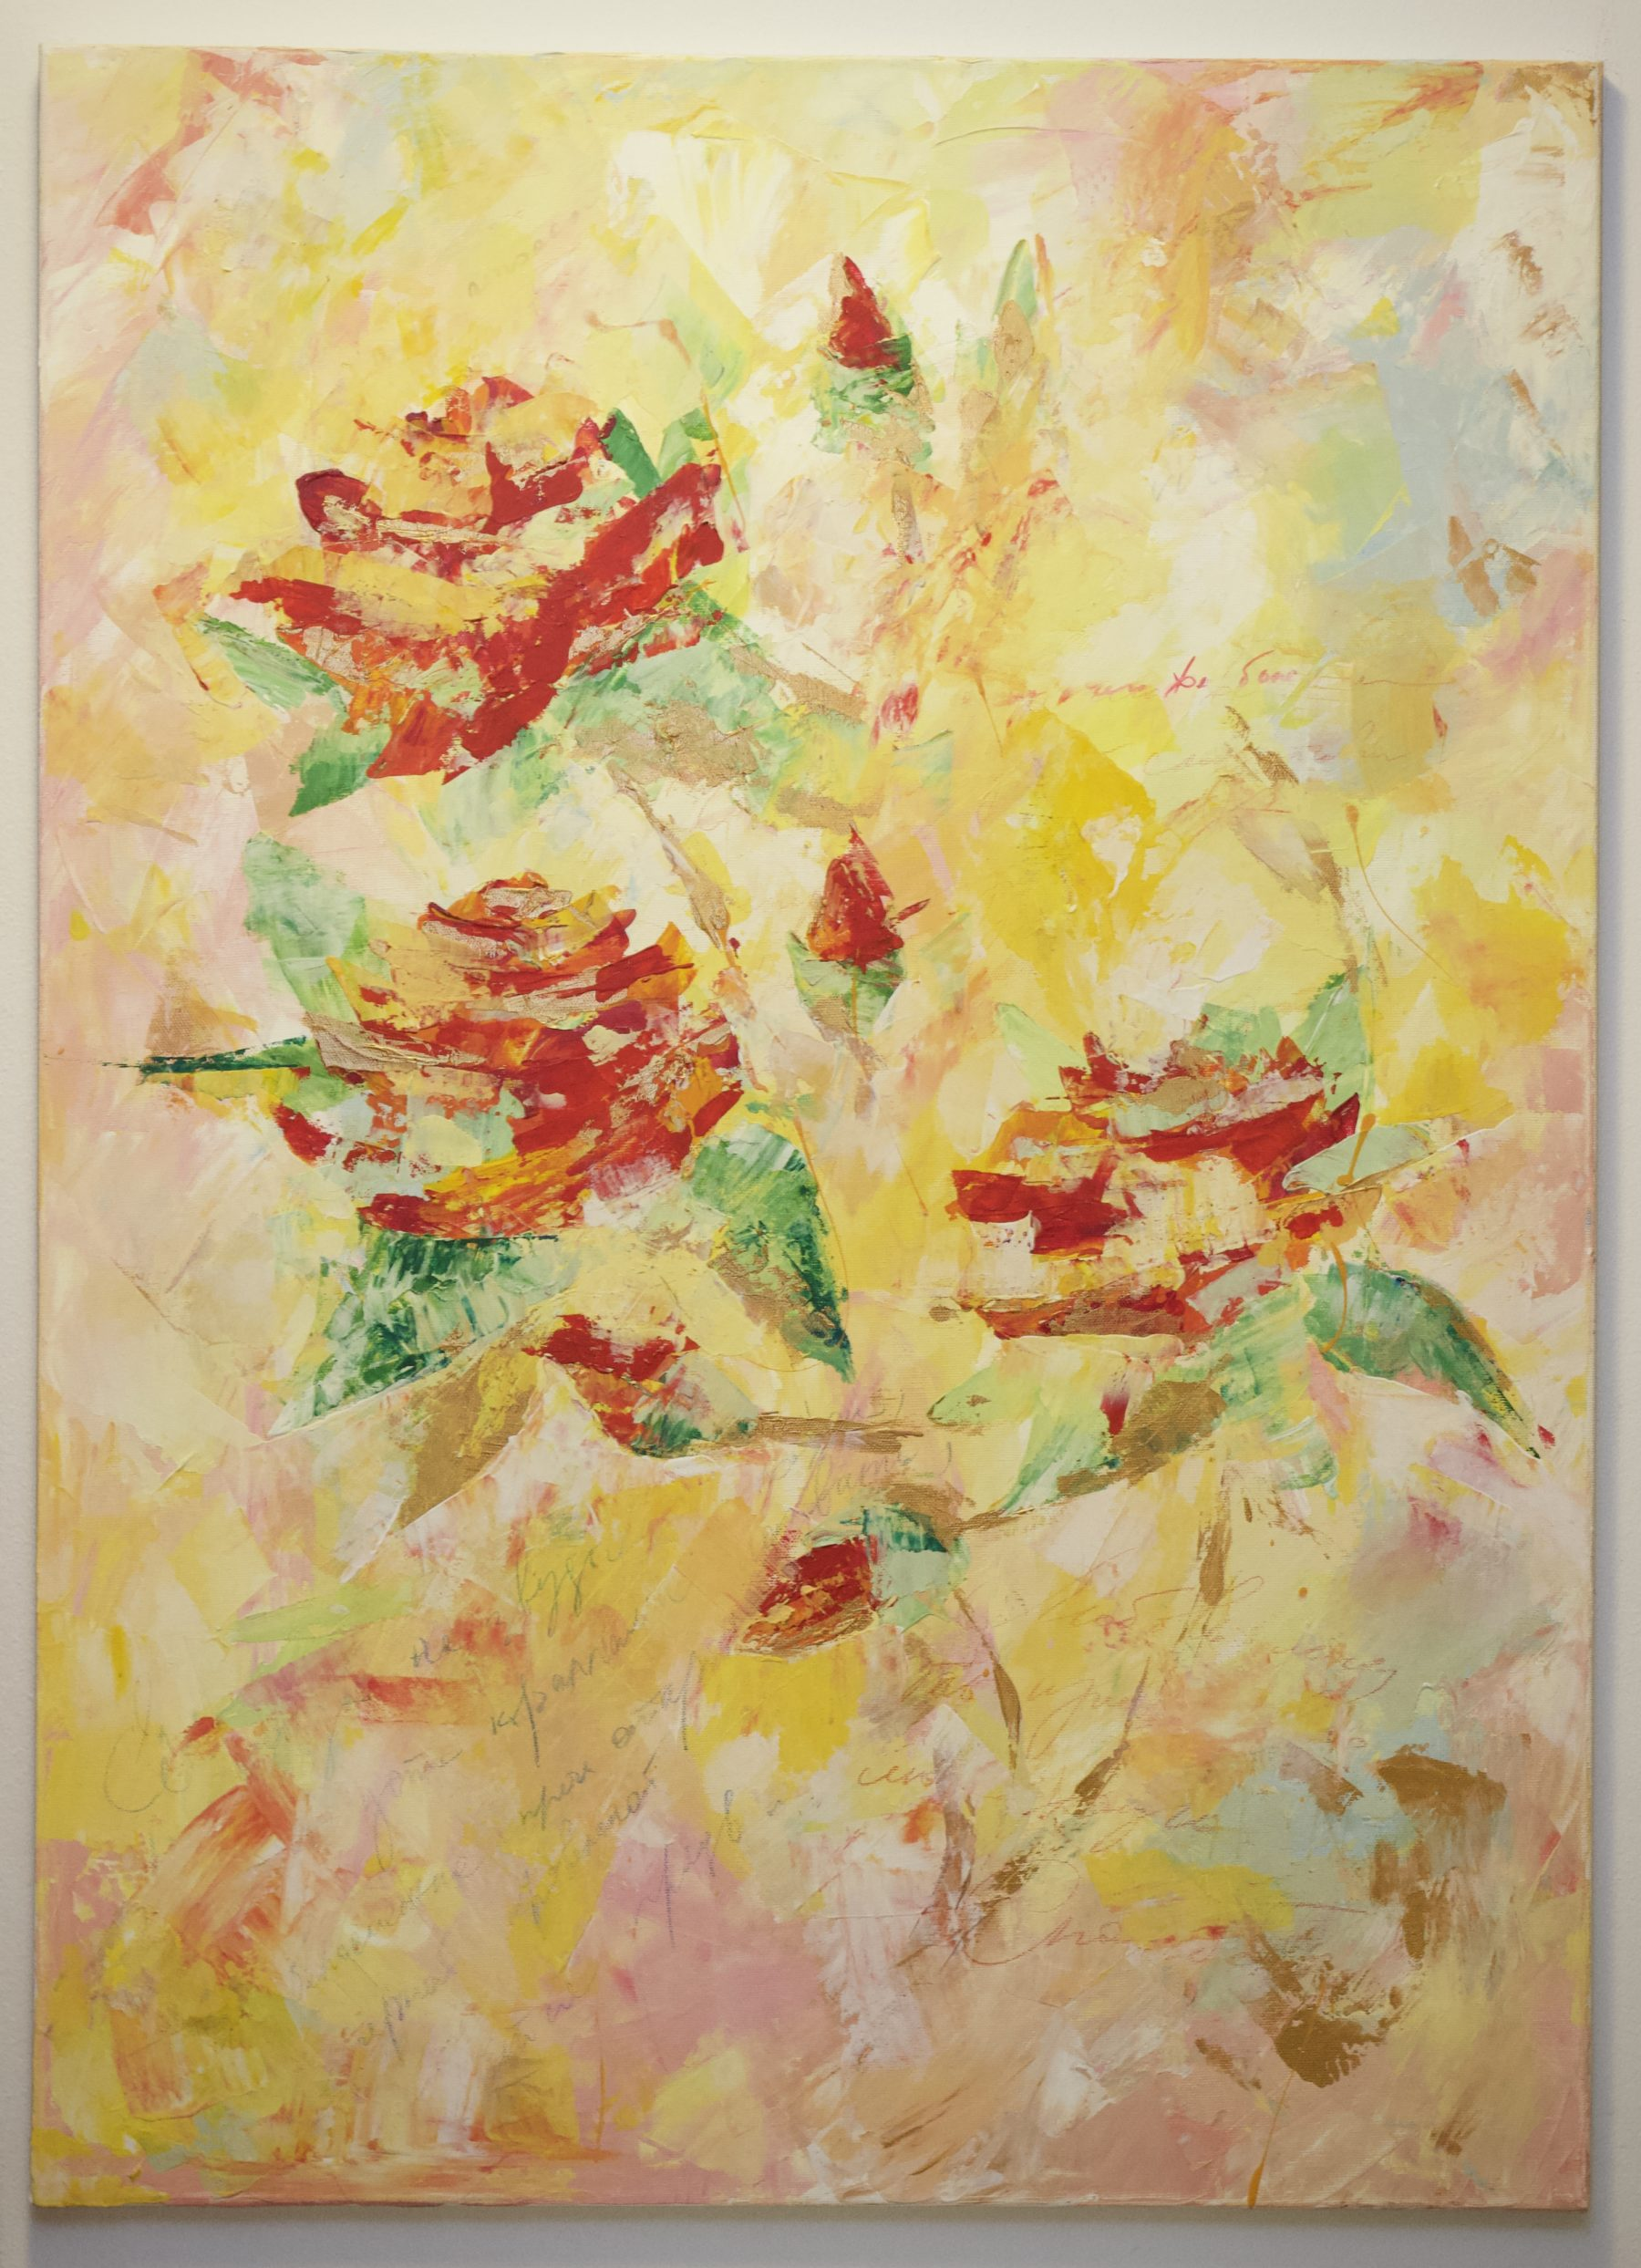 Letter of love 2017 December - Abstract painting course by Immonen-Lindberg Helka